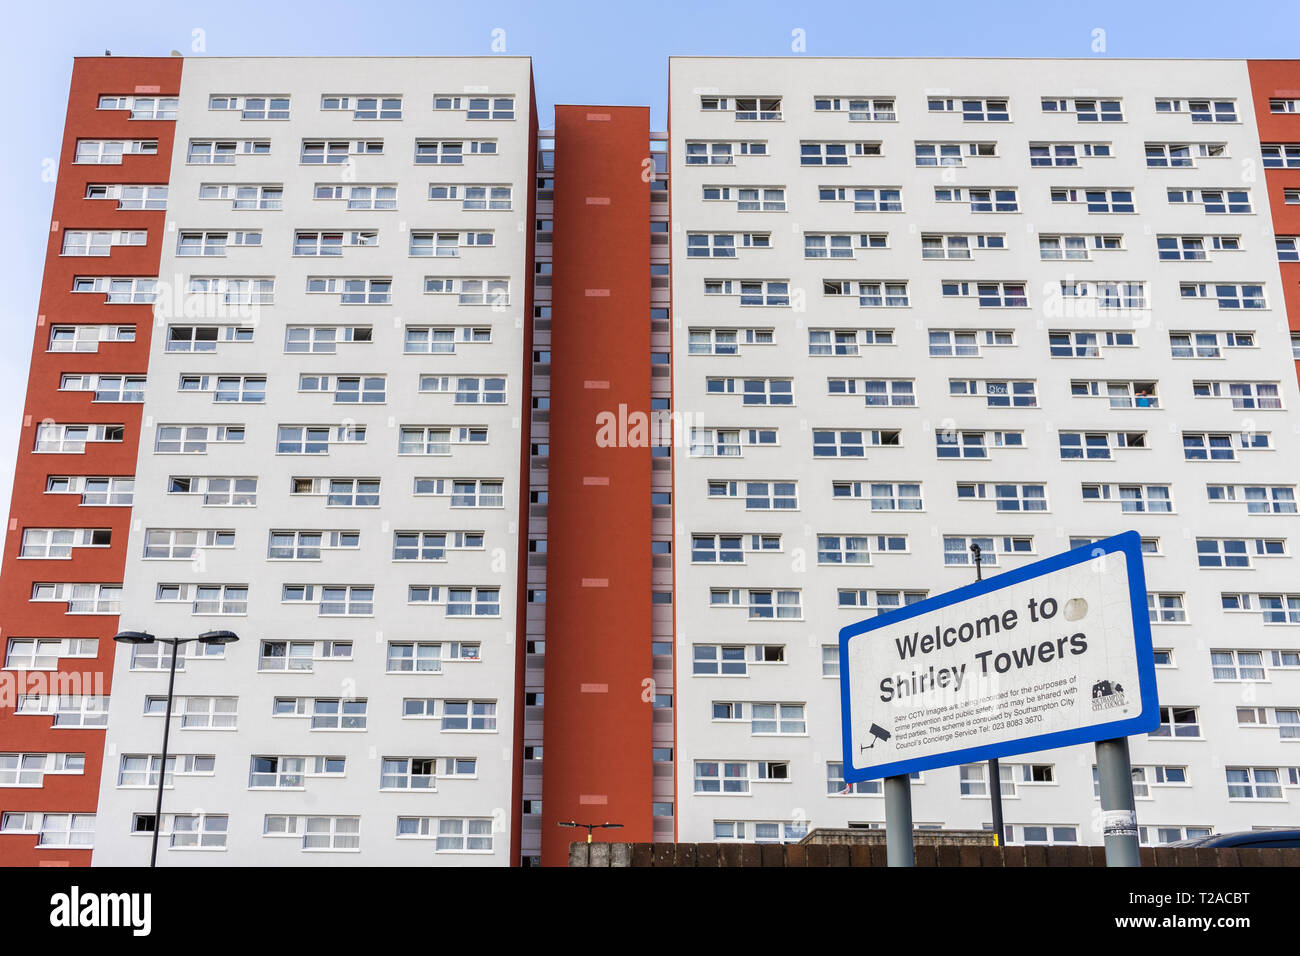 Shirley Towers a residential council owned concrete tower block 2019, Shirley district council estate, Southampton, England, UK - Stock Image